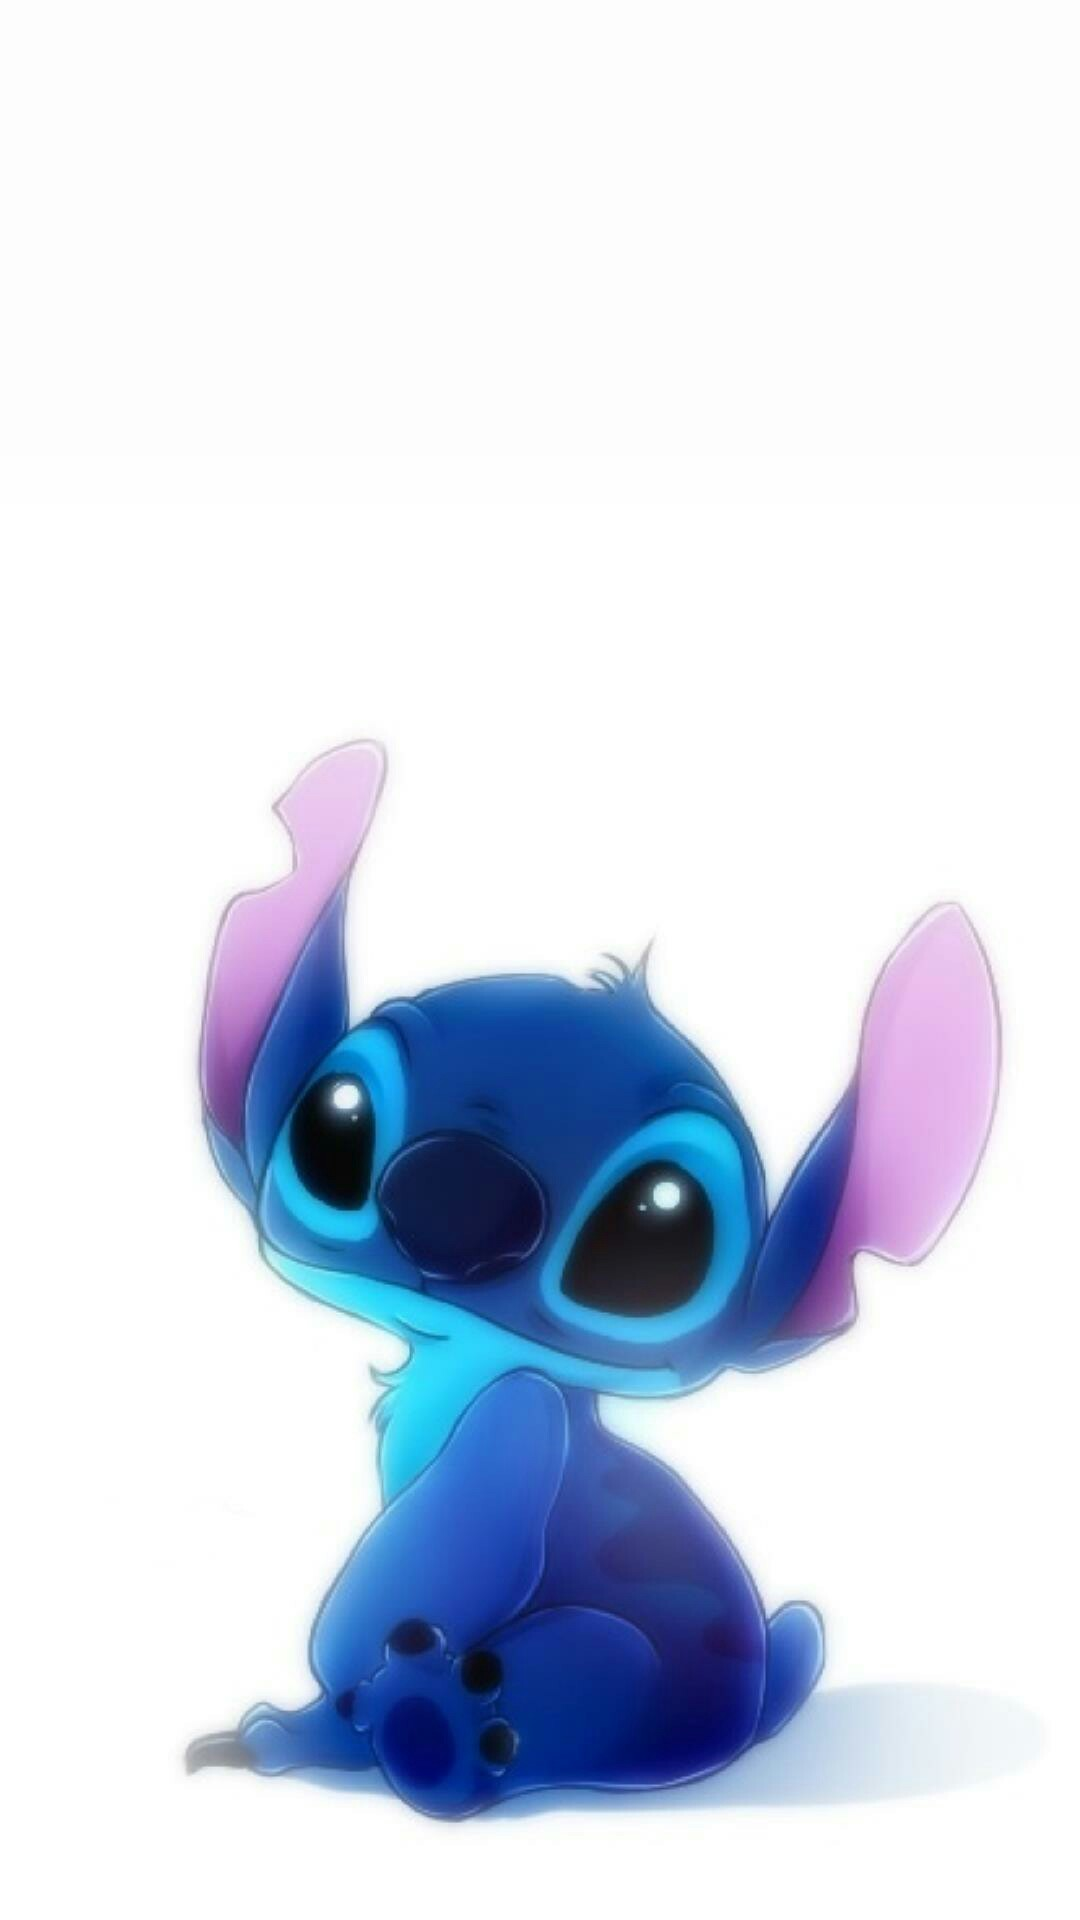 Cute Lilo and Stitch Wallpaper (60+ images)